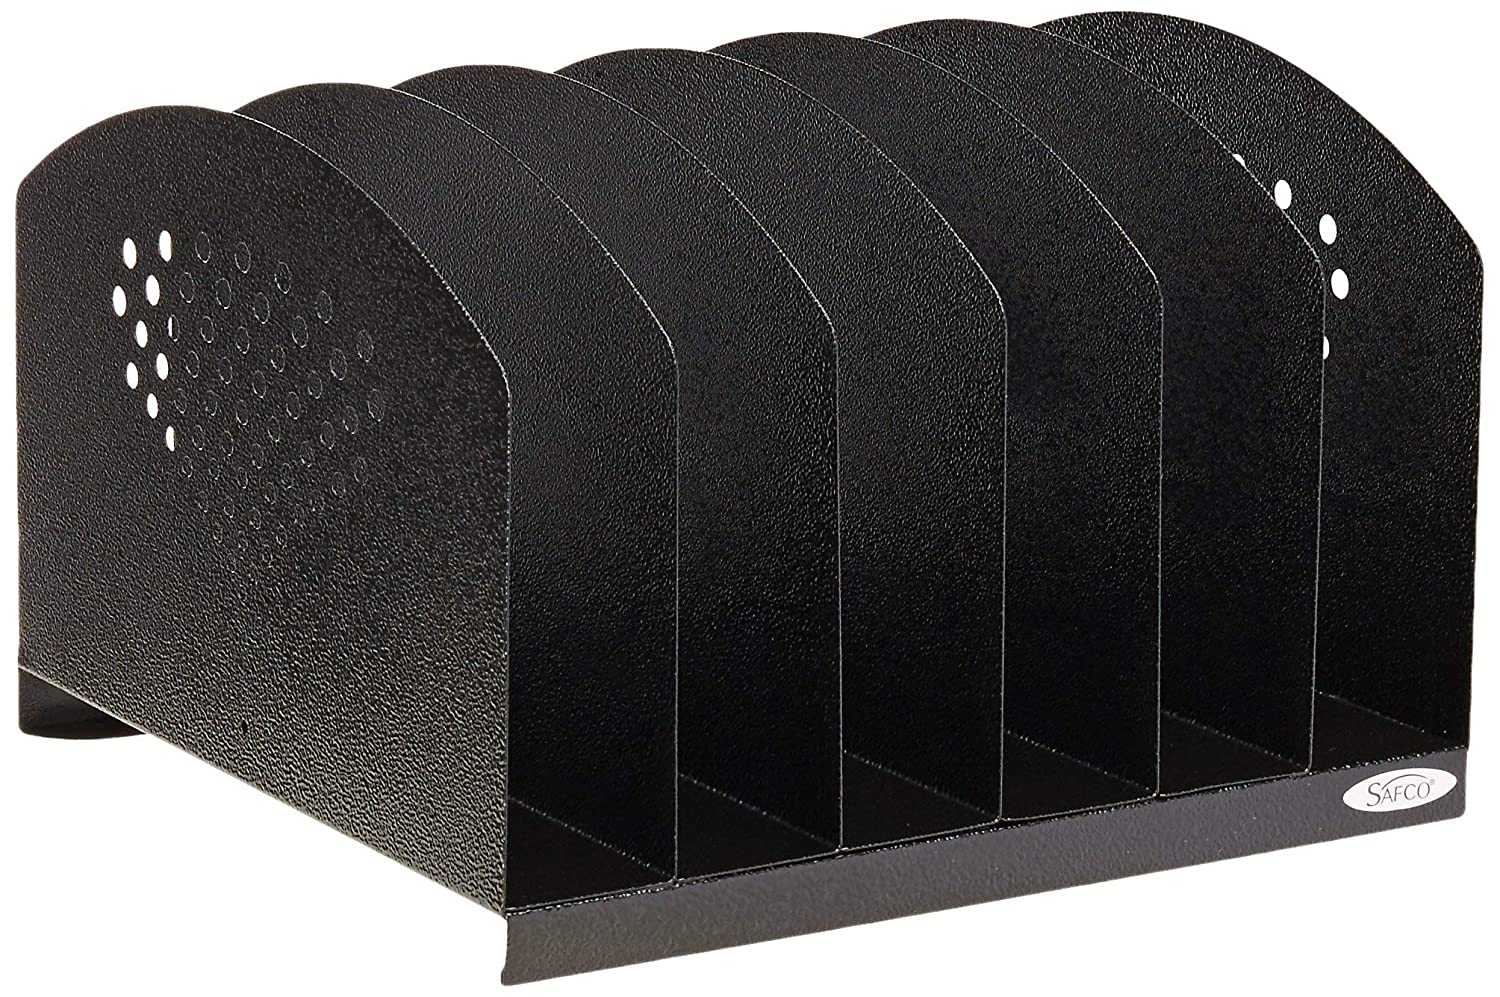 Safco Products 3155BL Steel Desk Organizer Rack with 6 Vertical Sections, Black